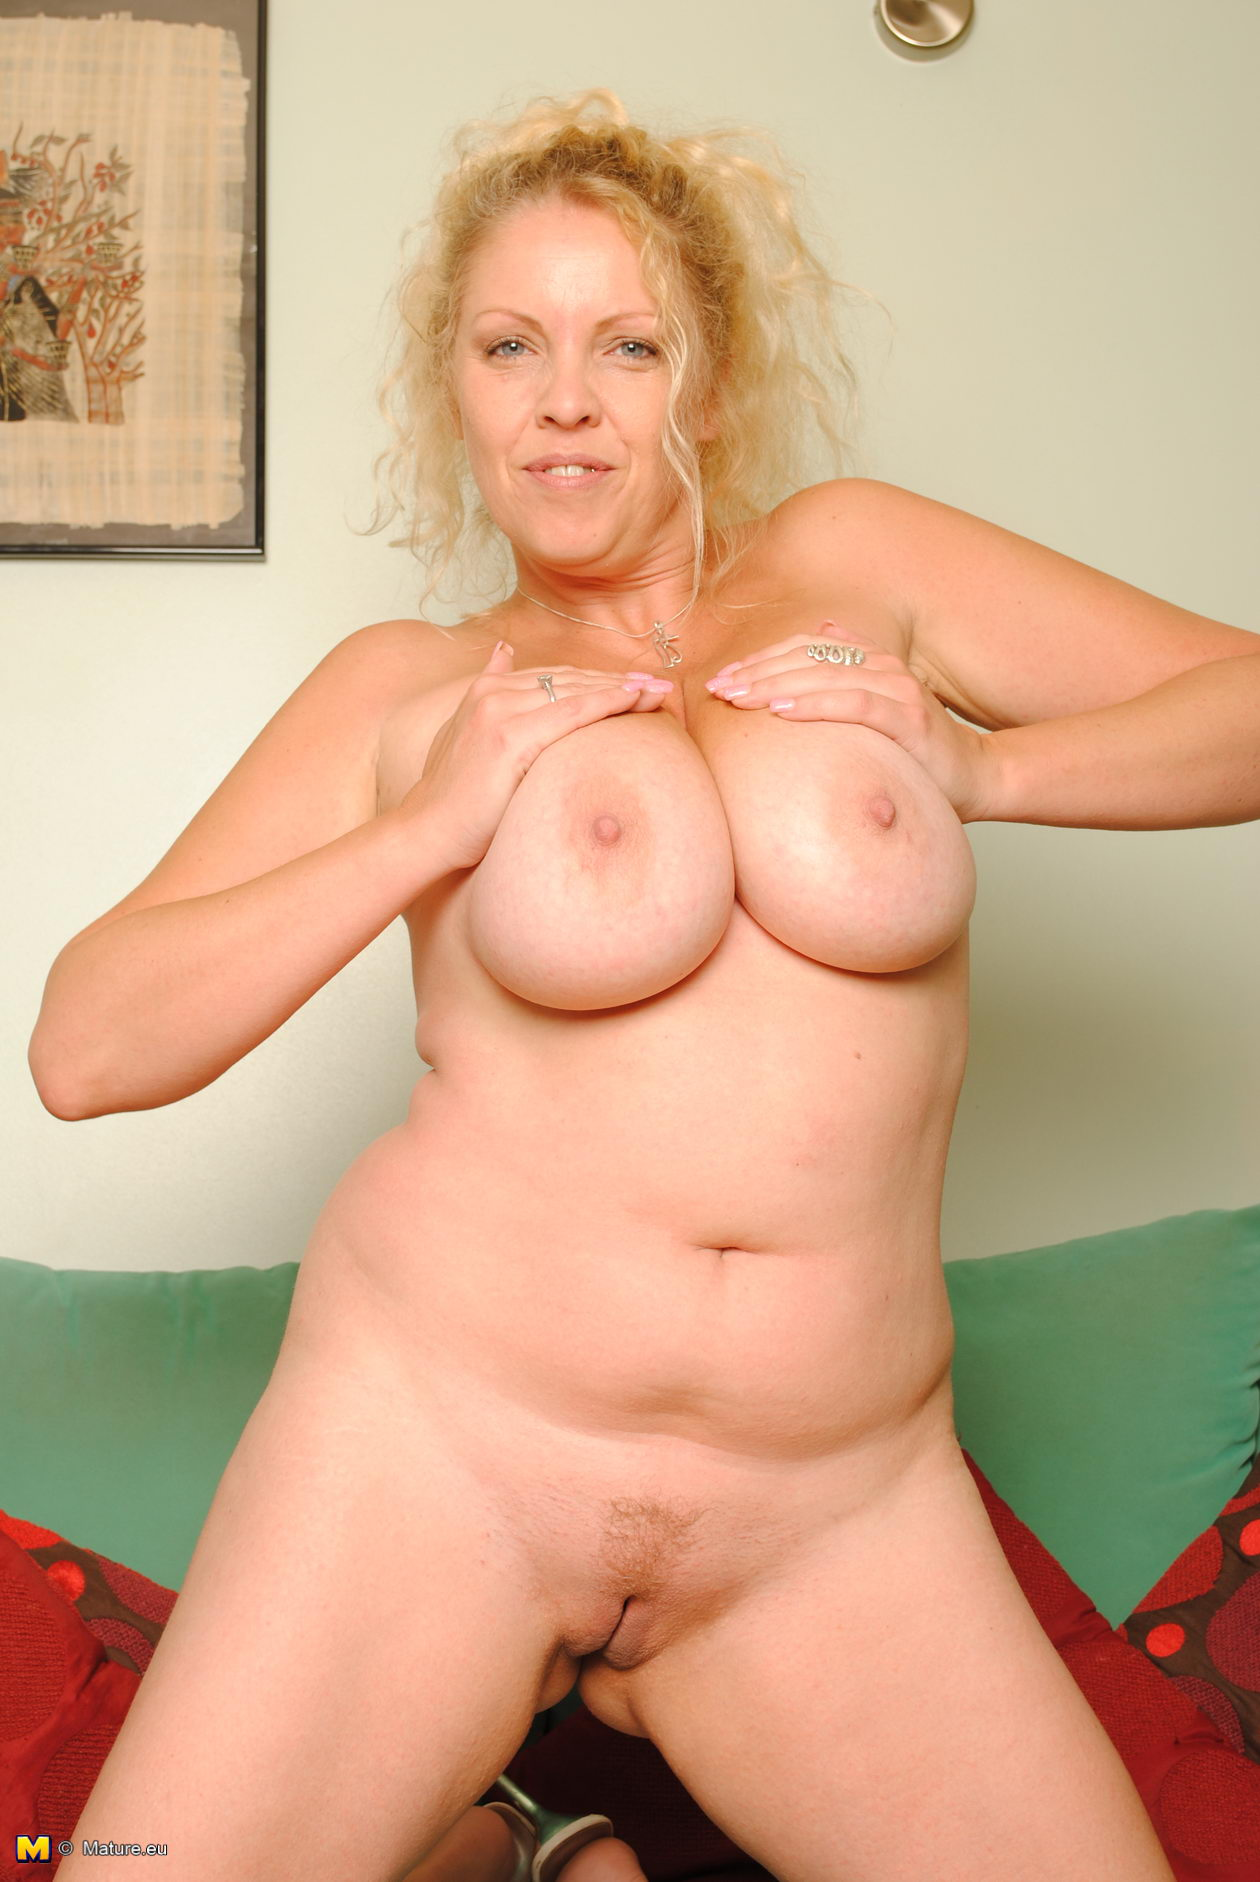 Big tits mature blonde milf pussy for that